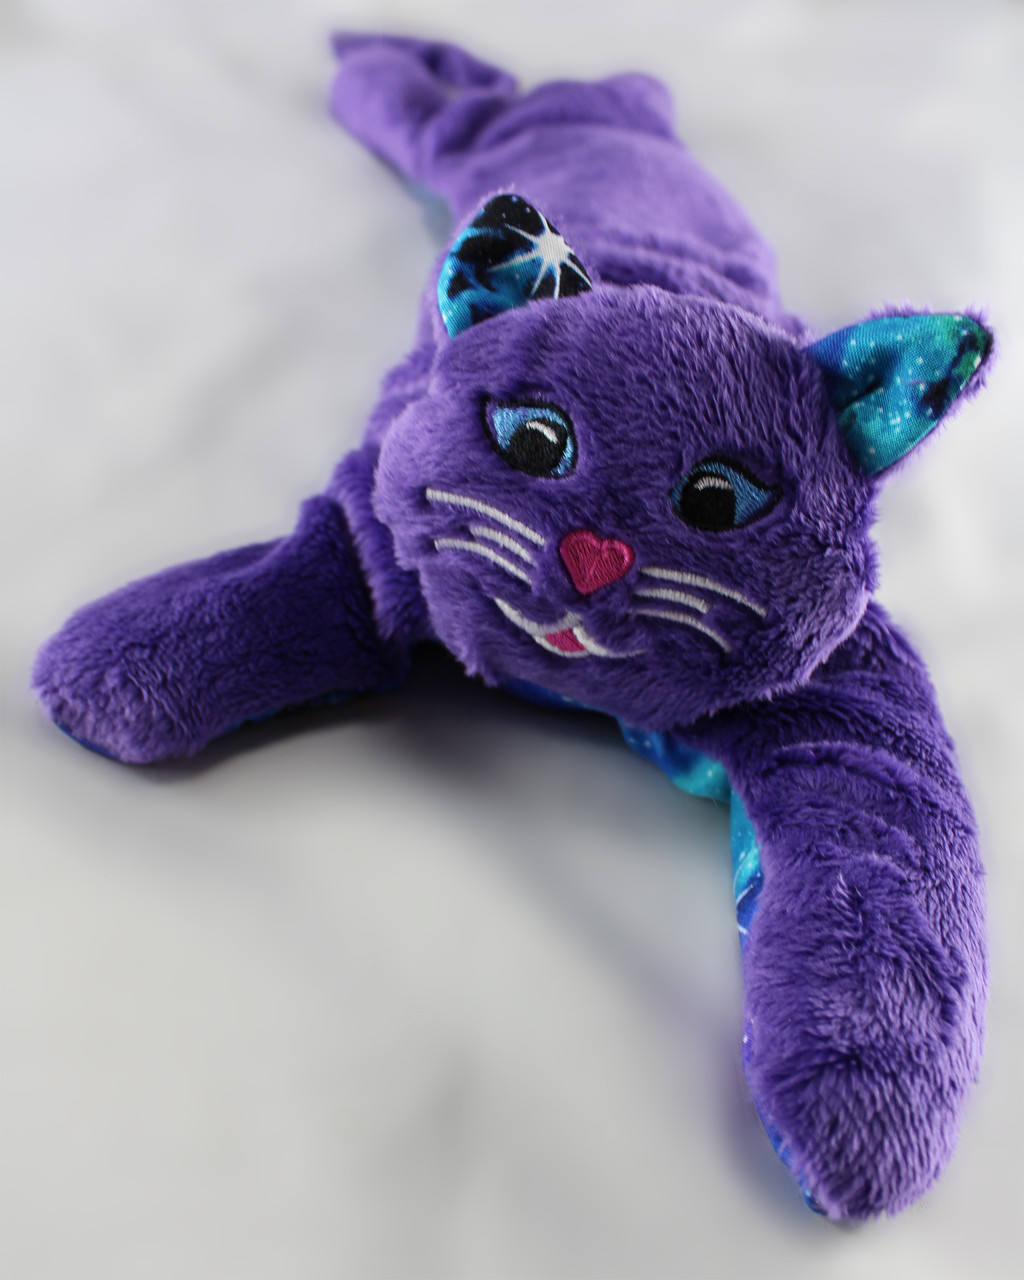 Kitty Kuddles - Purple with Galaxy Belly and Ears